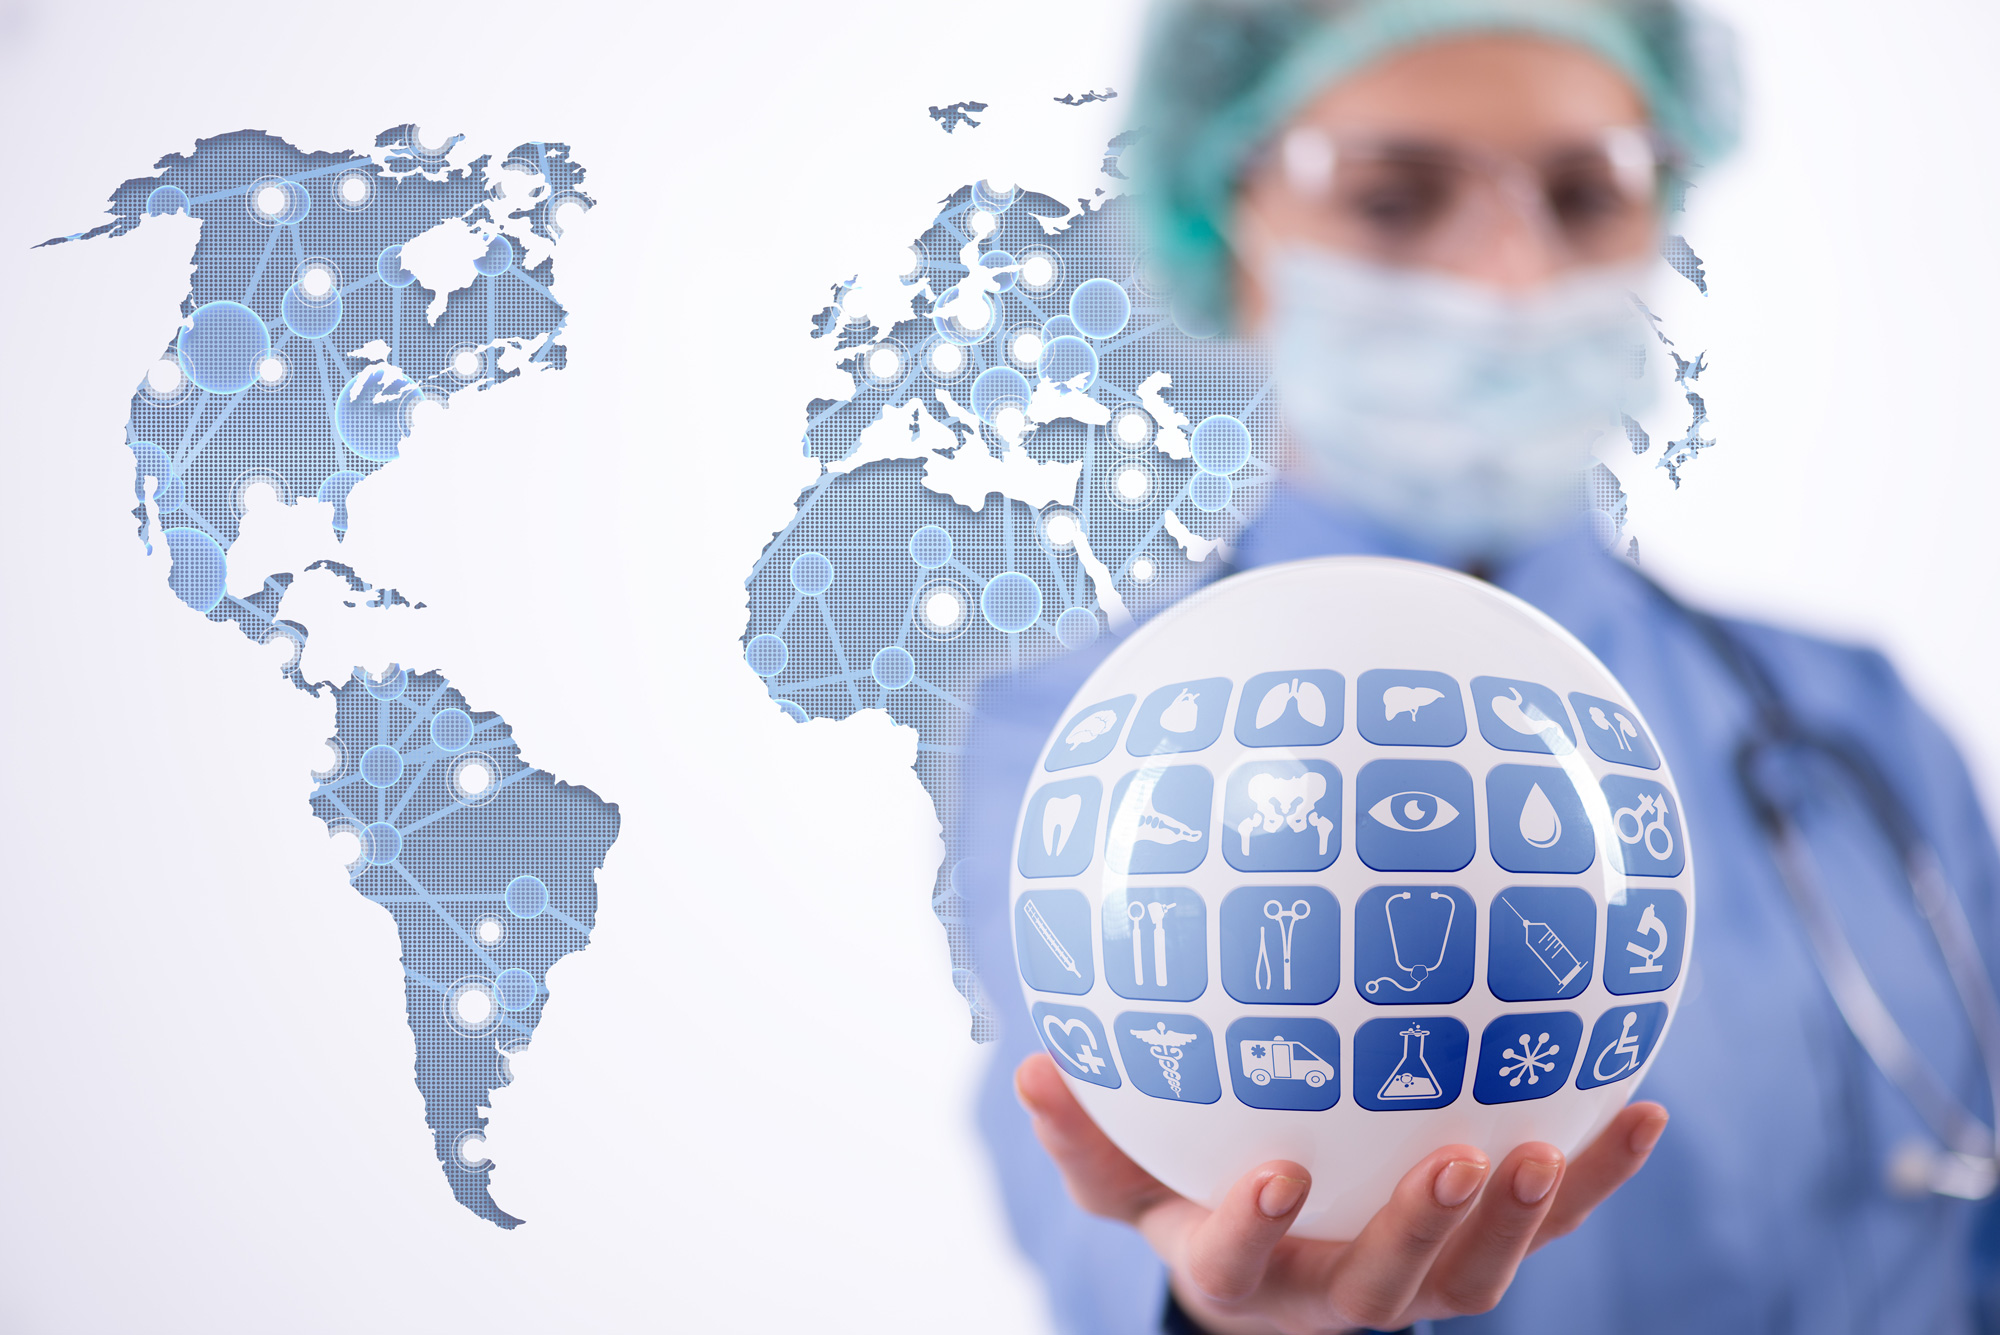 risks of globalization of health care While the government battles over a health care plan, many companies are taking matters into their own hands - finding solutions that they hope will bring their employees high quality medical care.